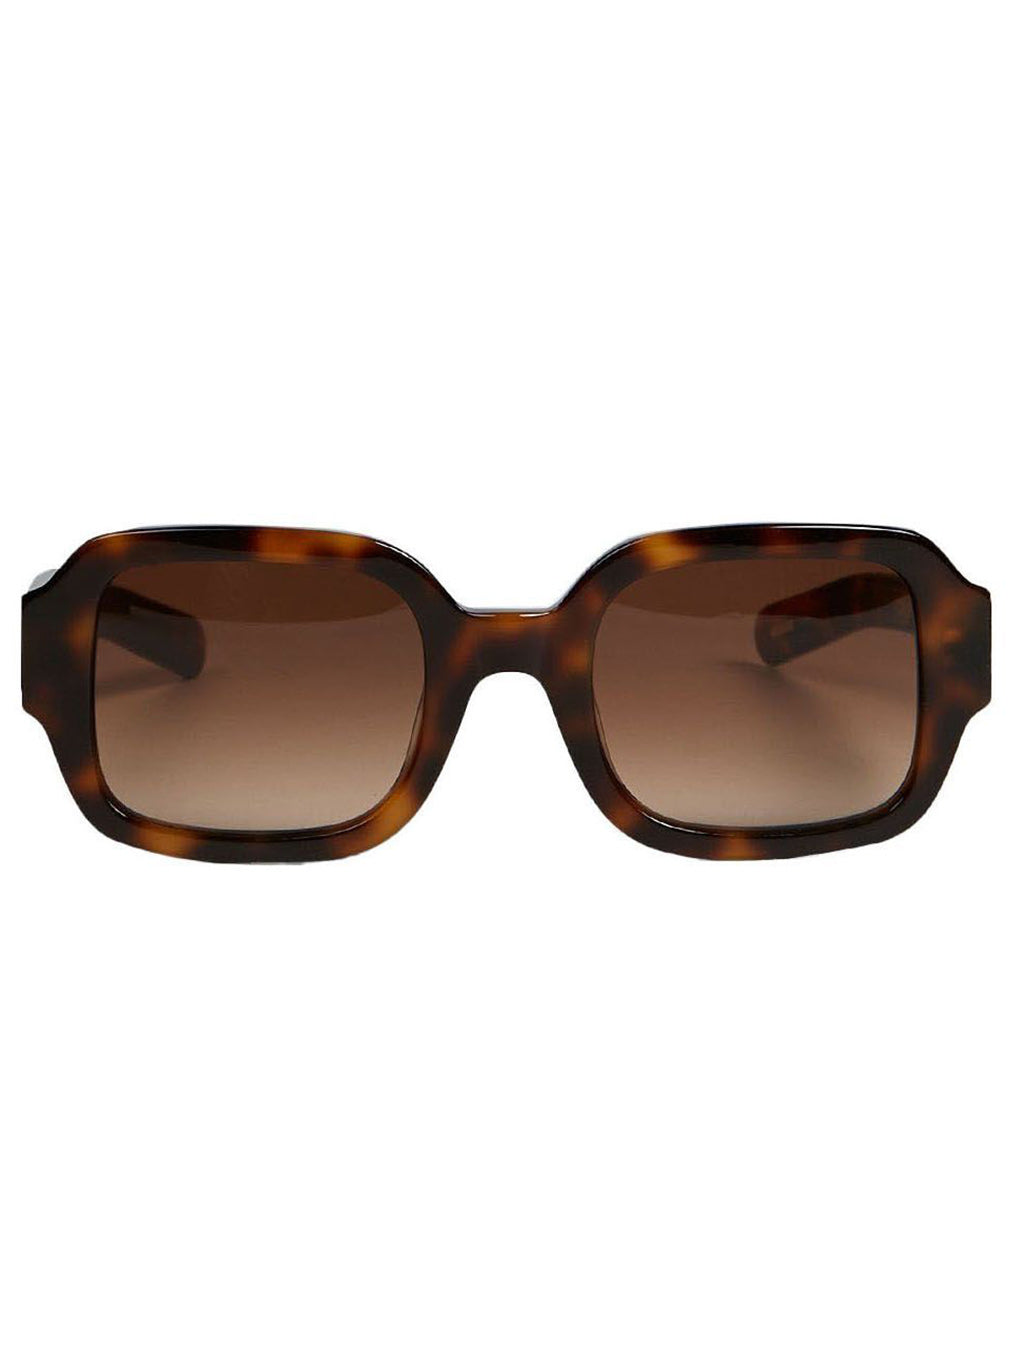 Brown Tishkoff Sunglasses